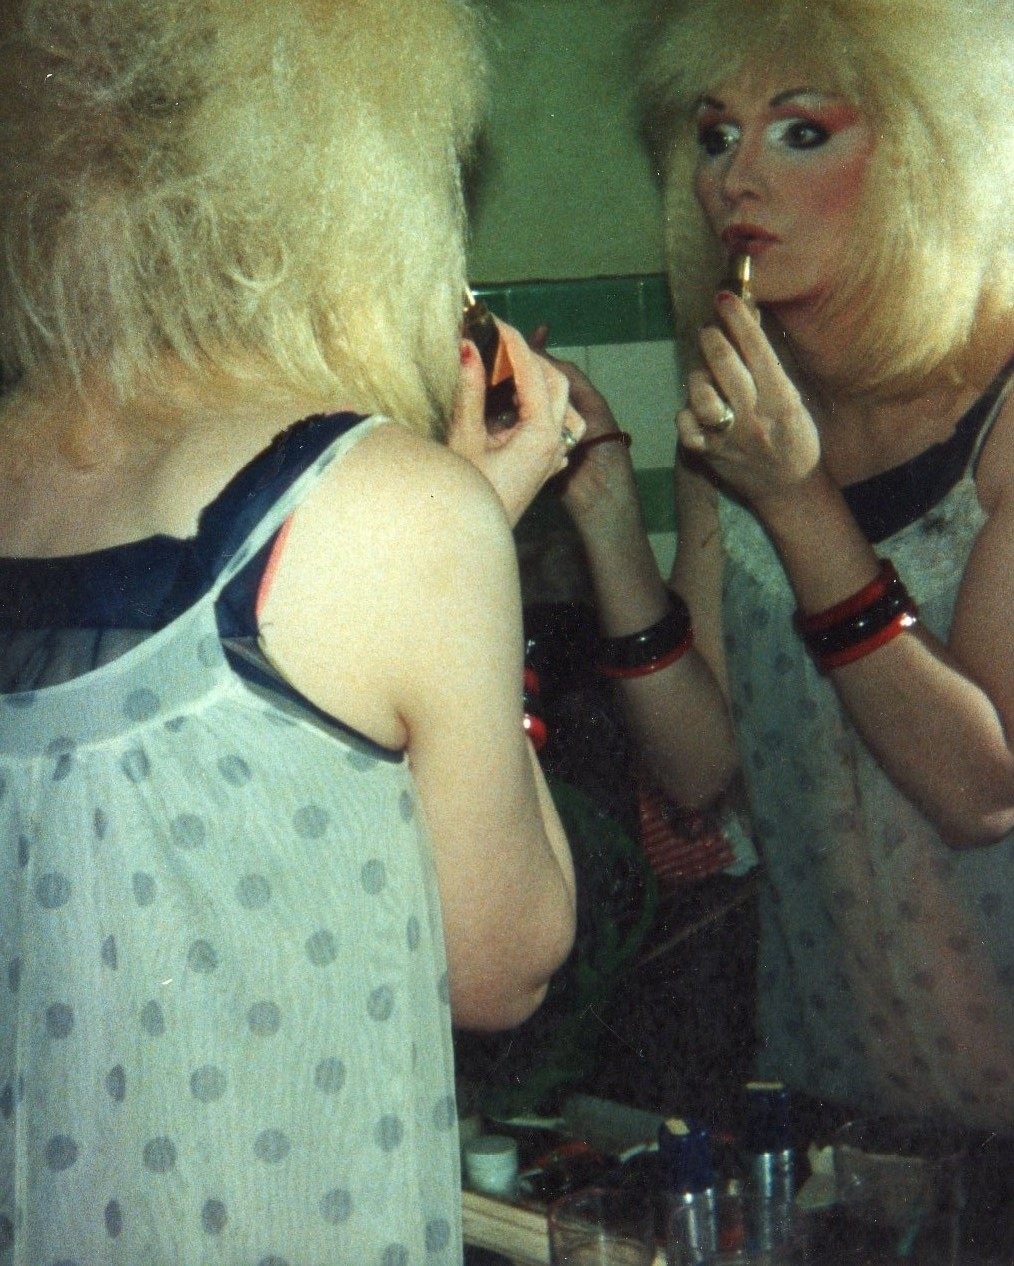 Jayne applying lipstick at The Pyramid Club 1988